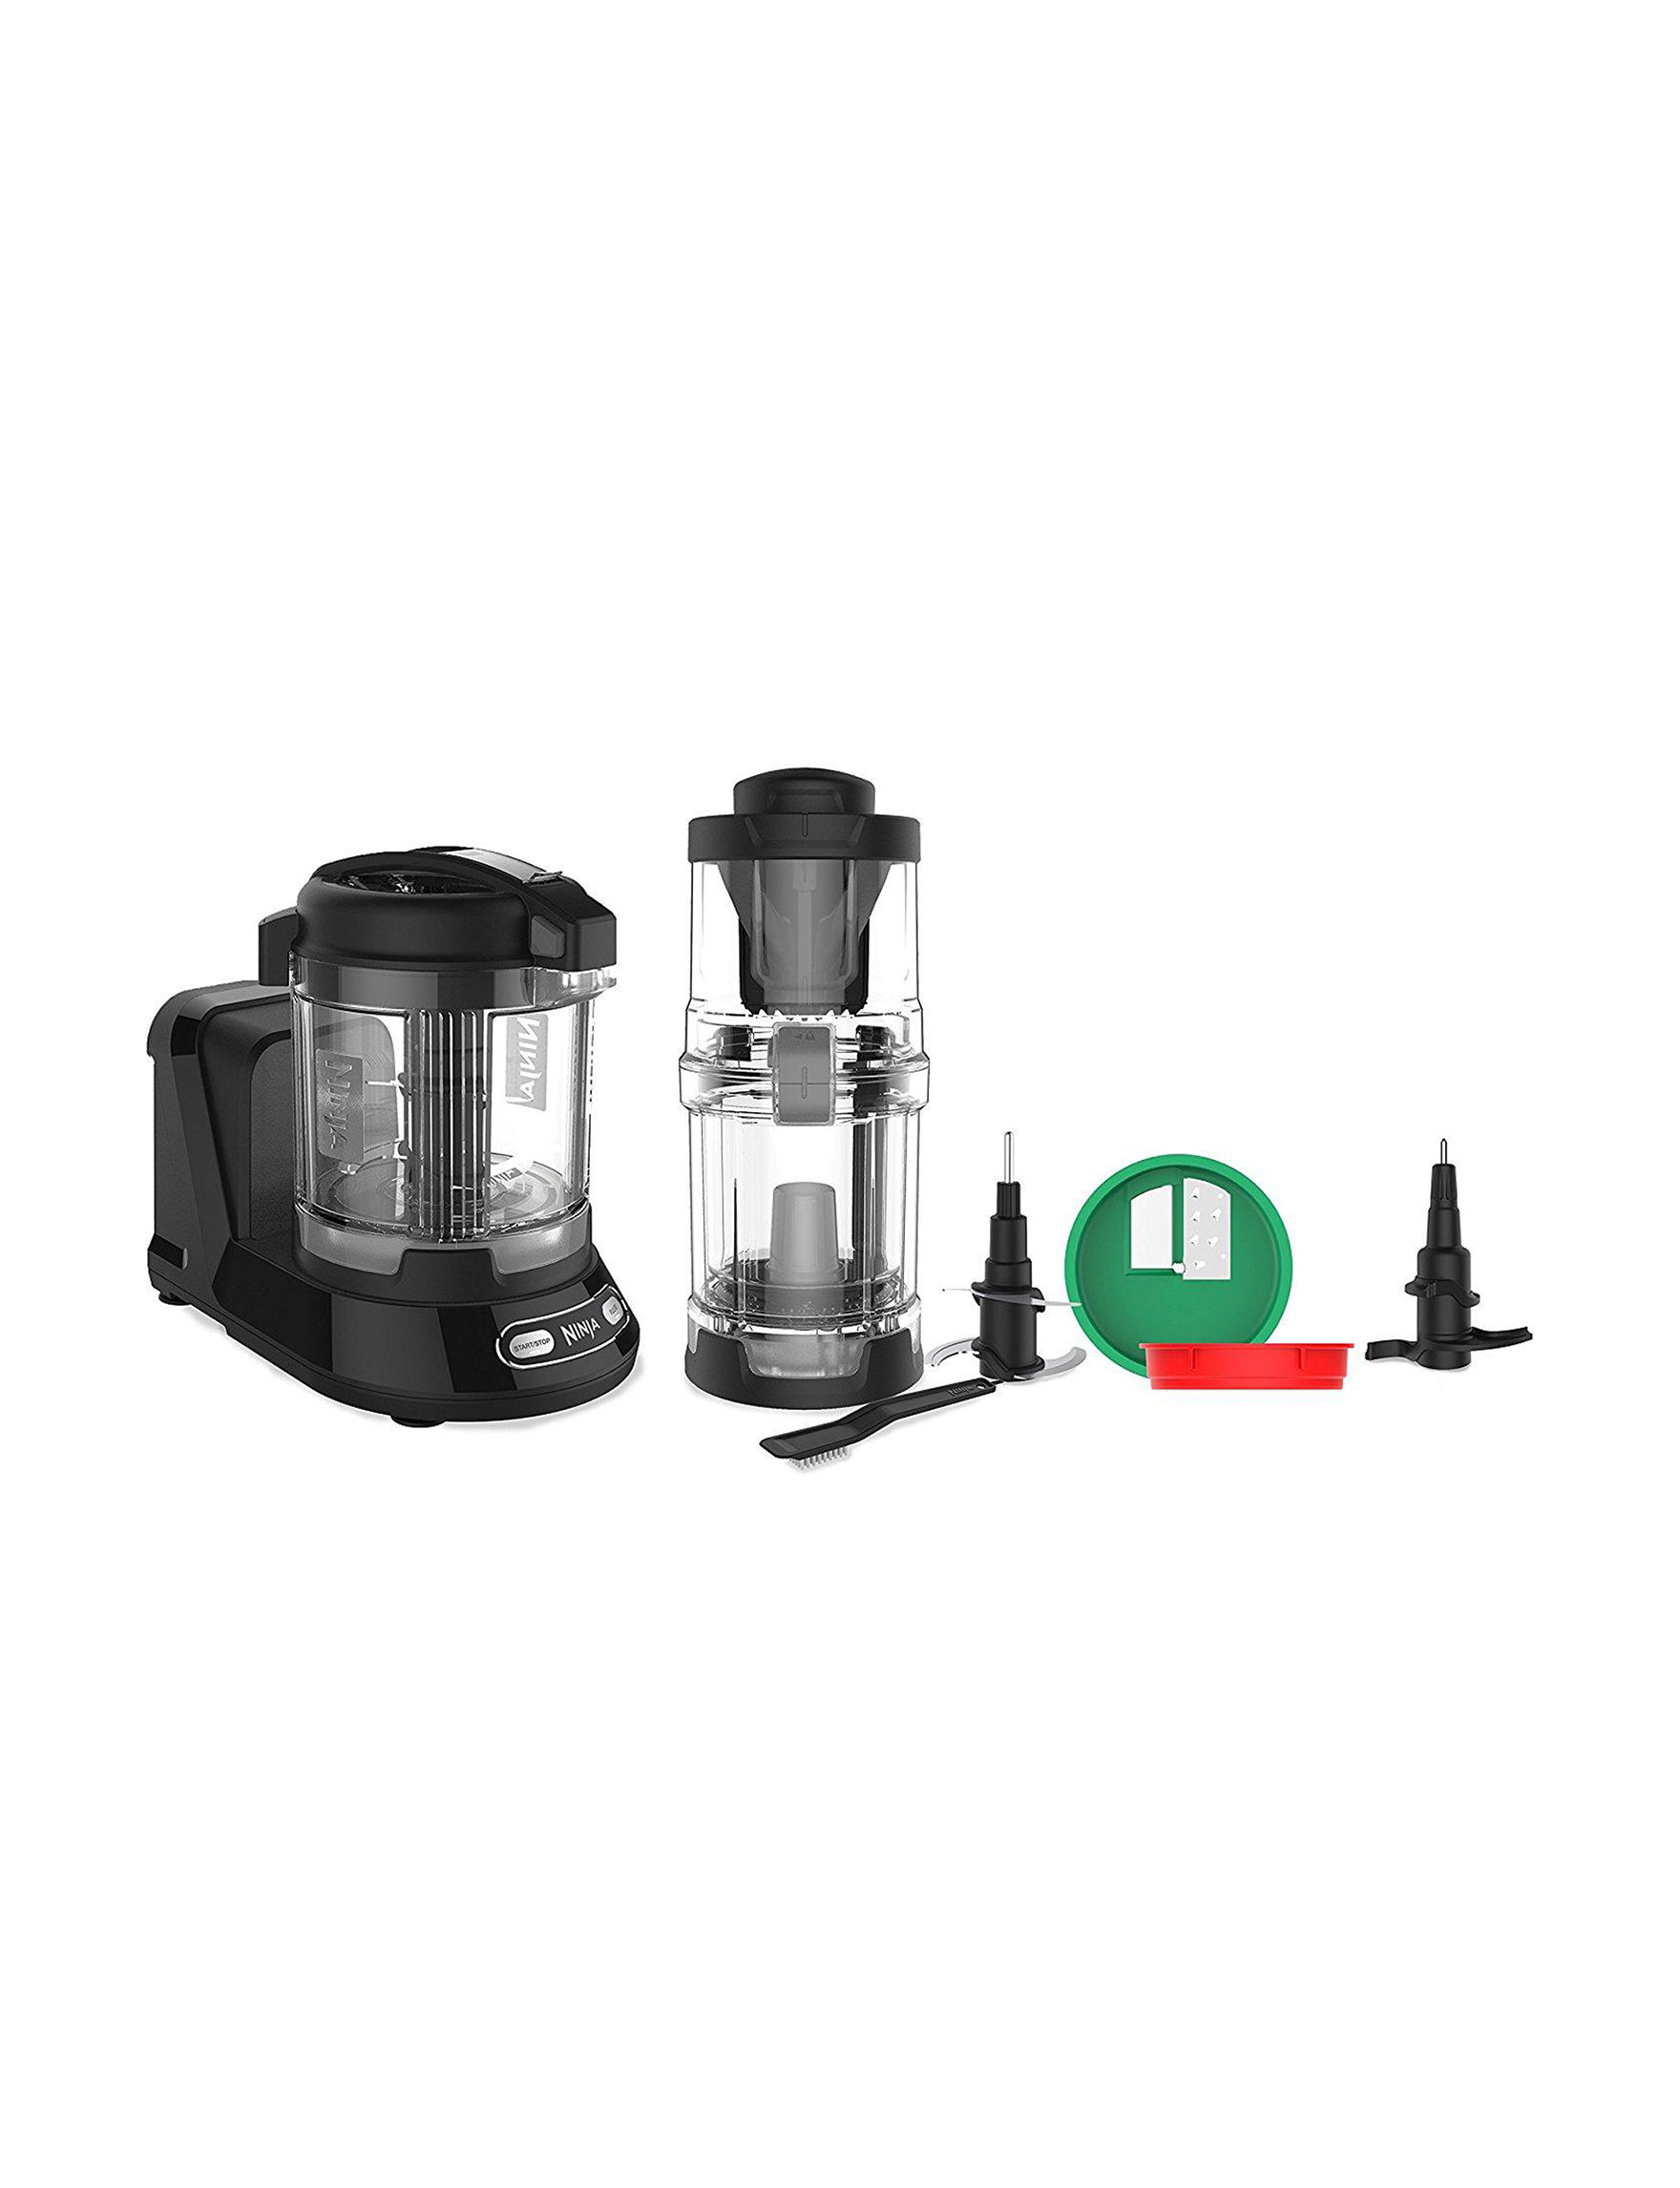 Ninja Black Blenders & Juicers Kitchen Appliances